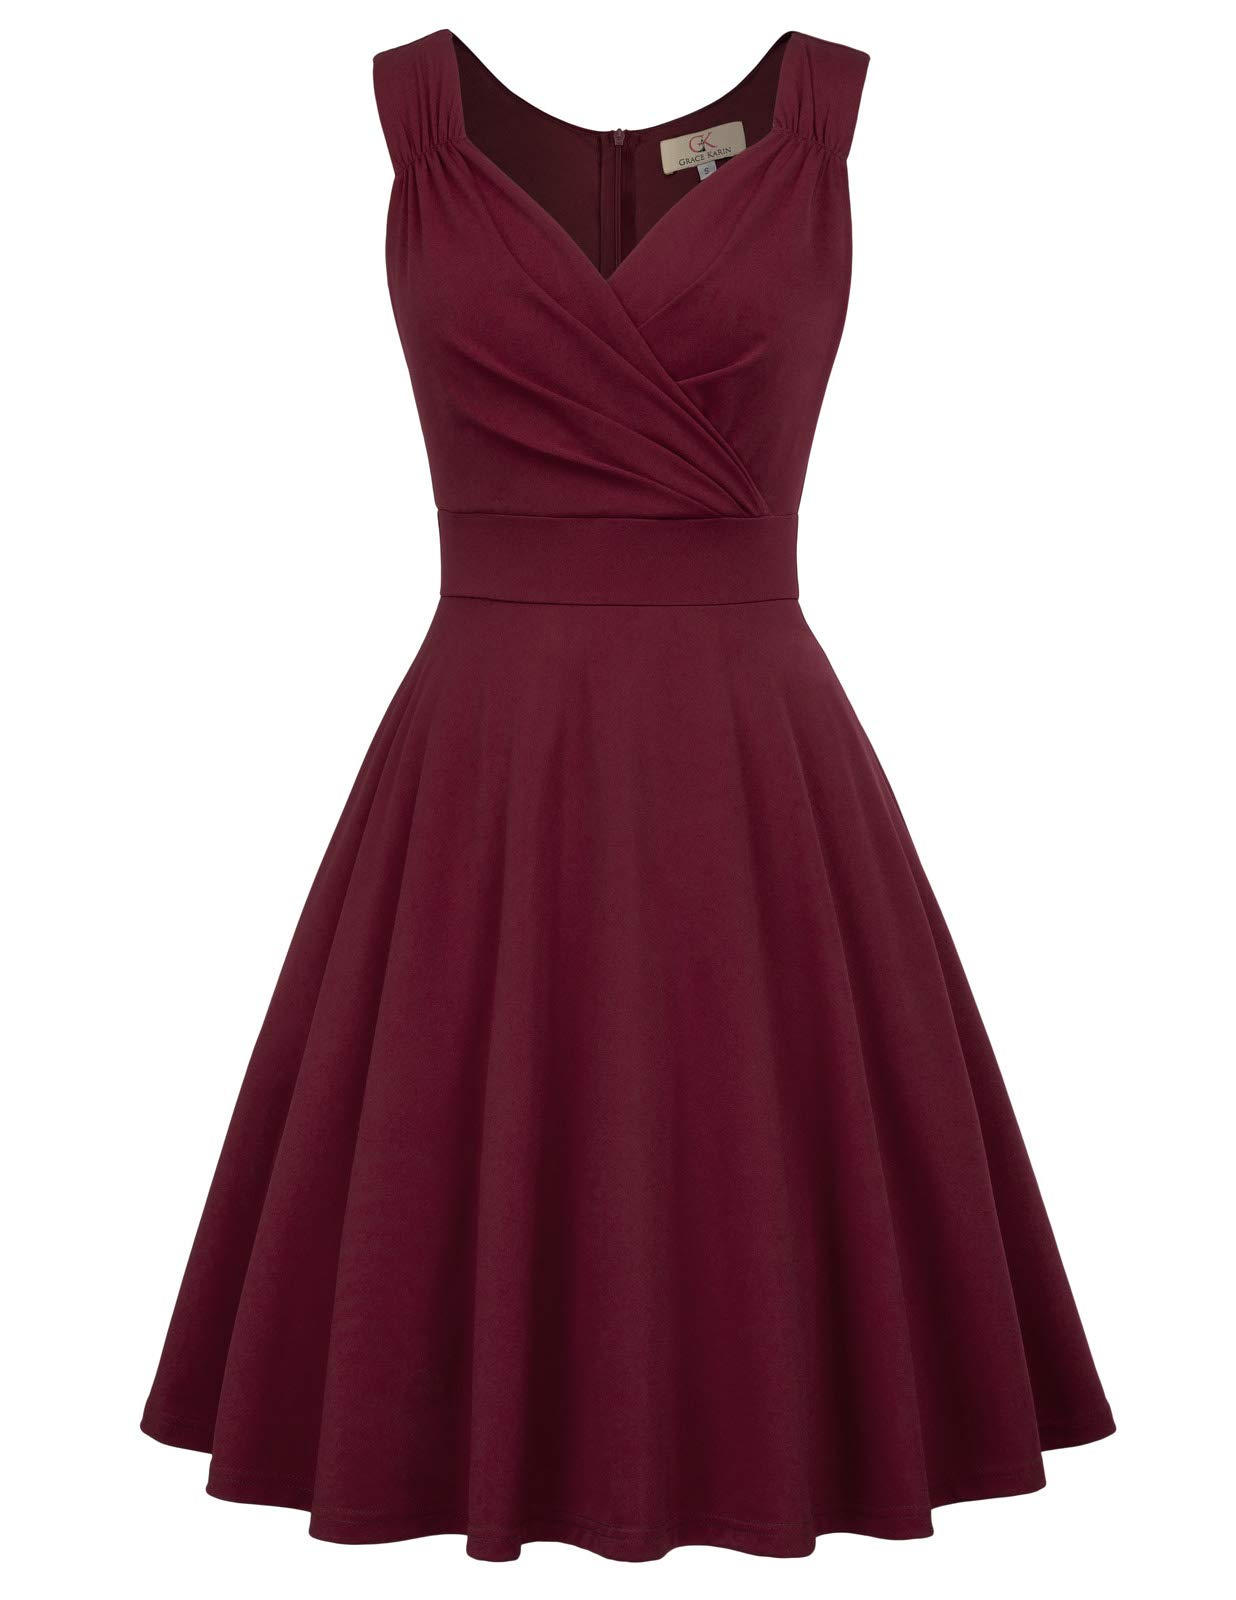 Party Dresses - Women's 50s 60s Vintage Sleeveless V-Neck Cocktail Swing Dress